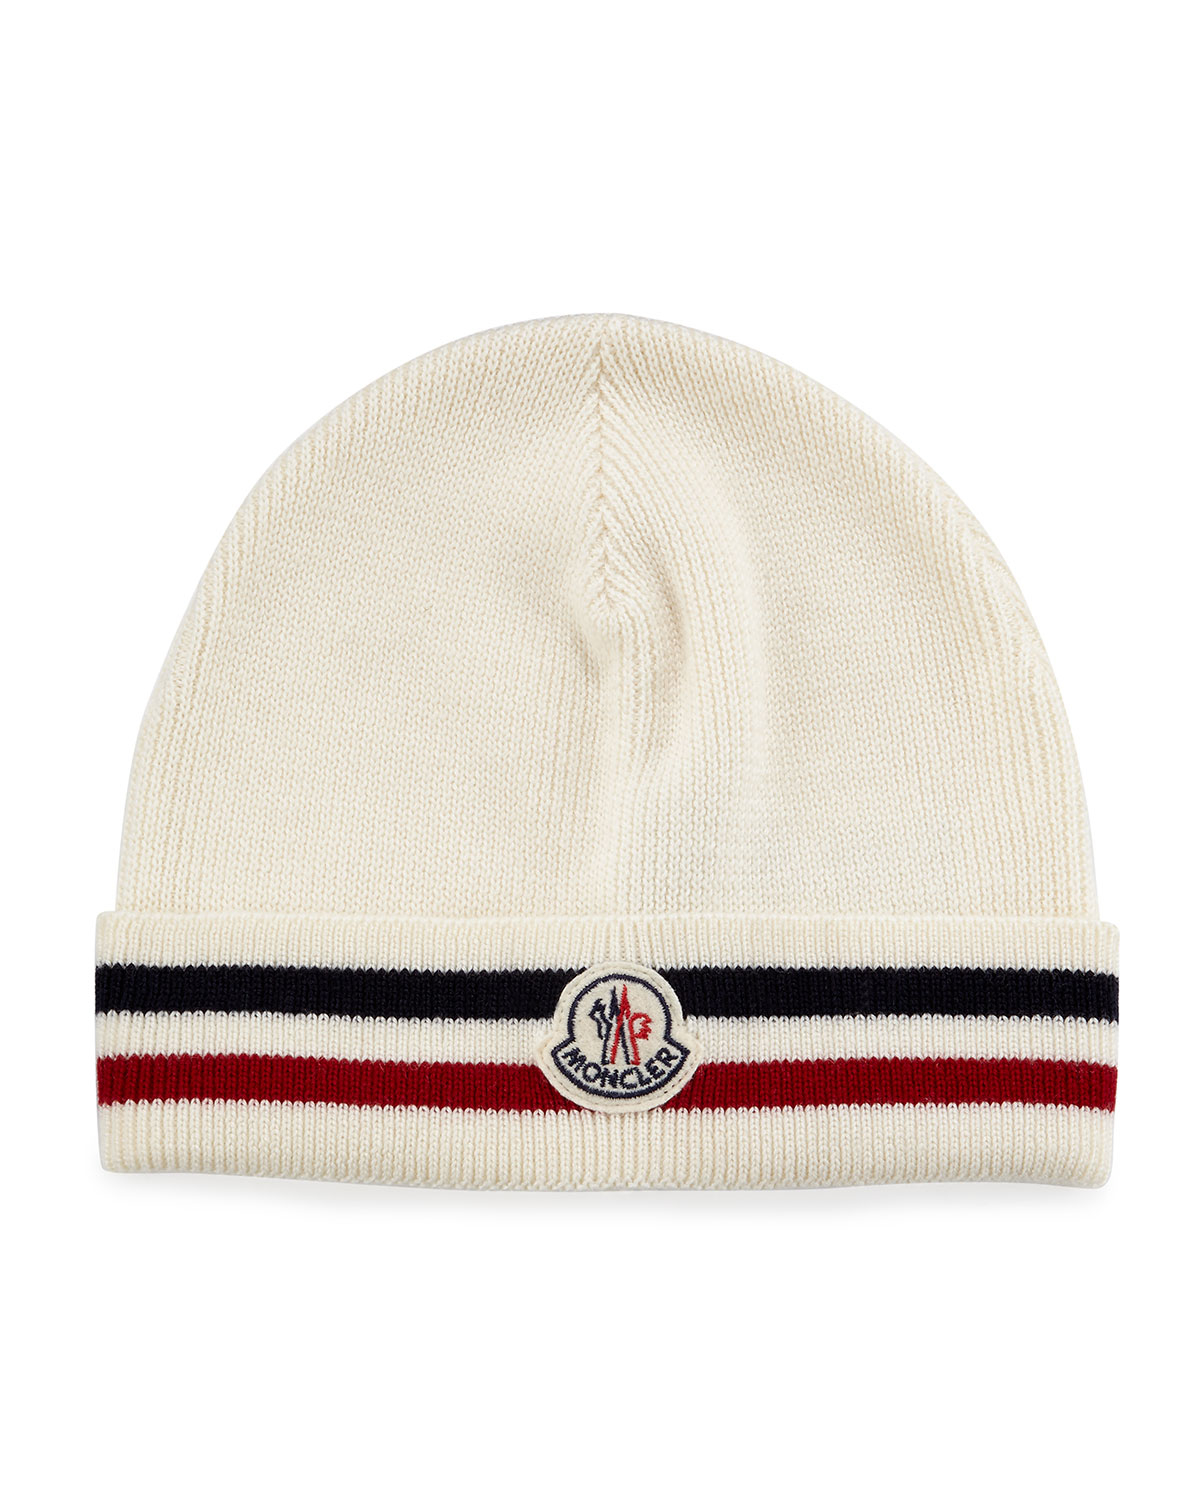 10775a6bc12 Lyst - Moncler Striped Logo Cashmere Beanie Hat in White for Men